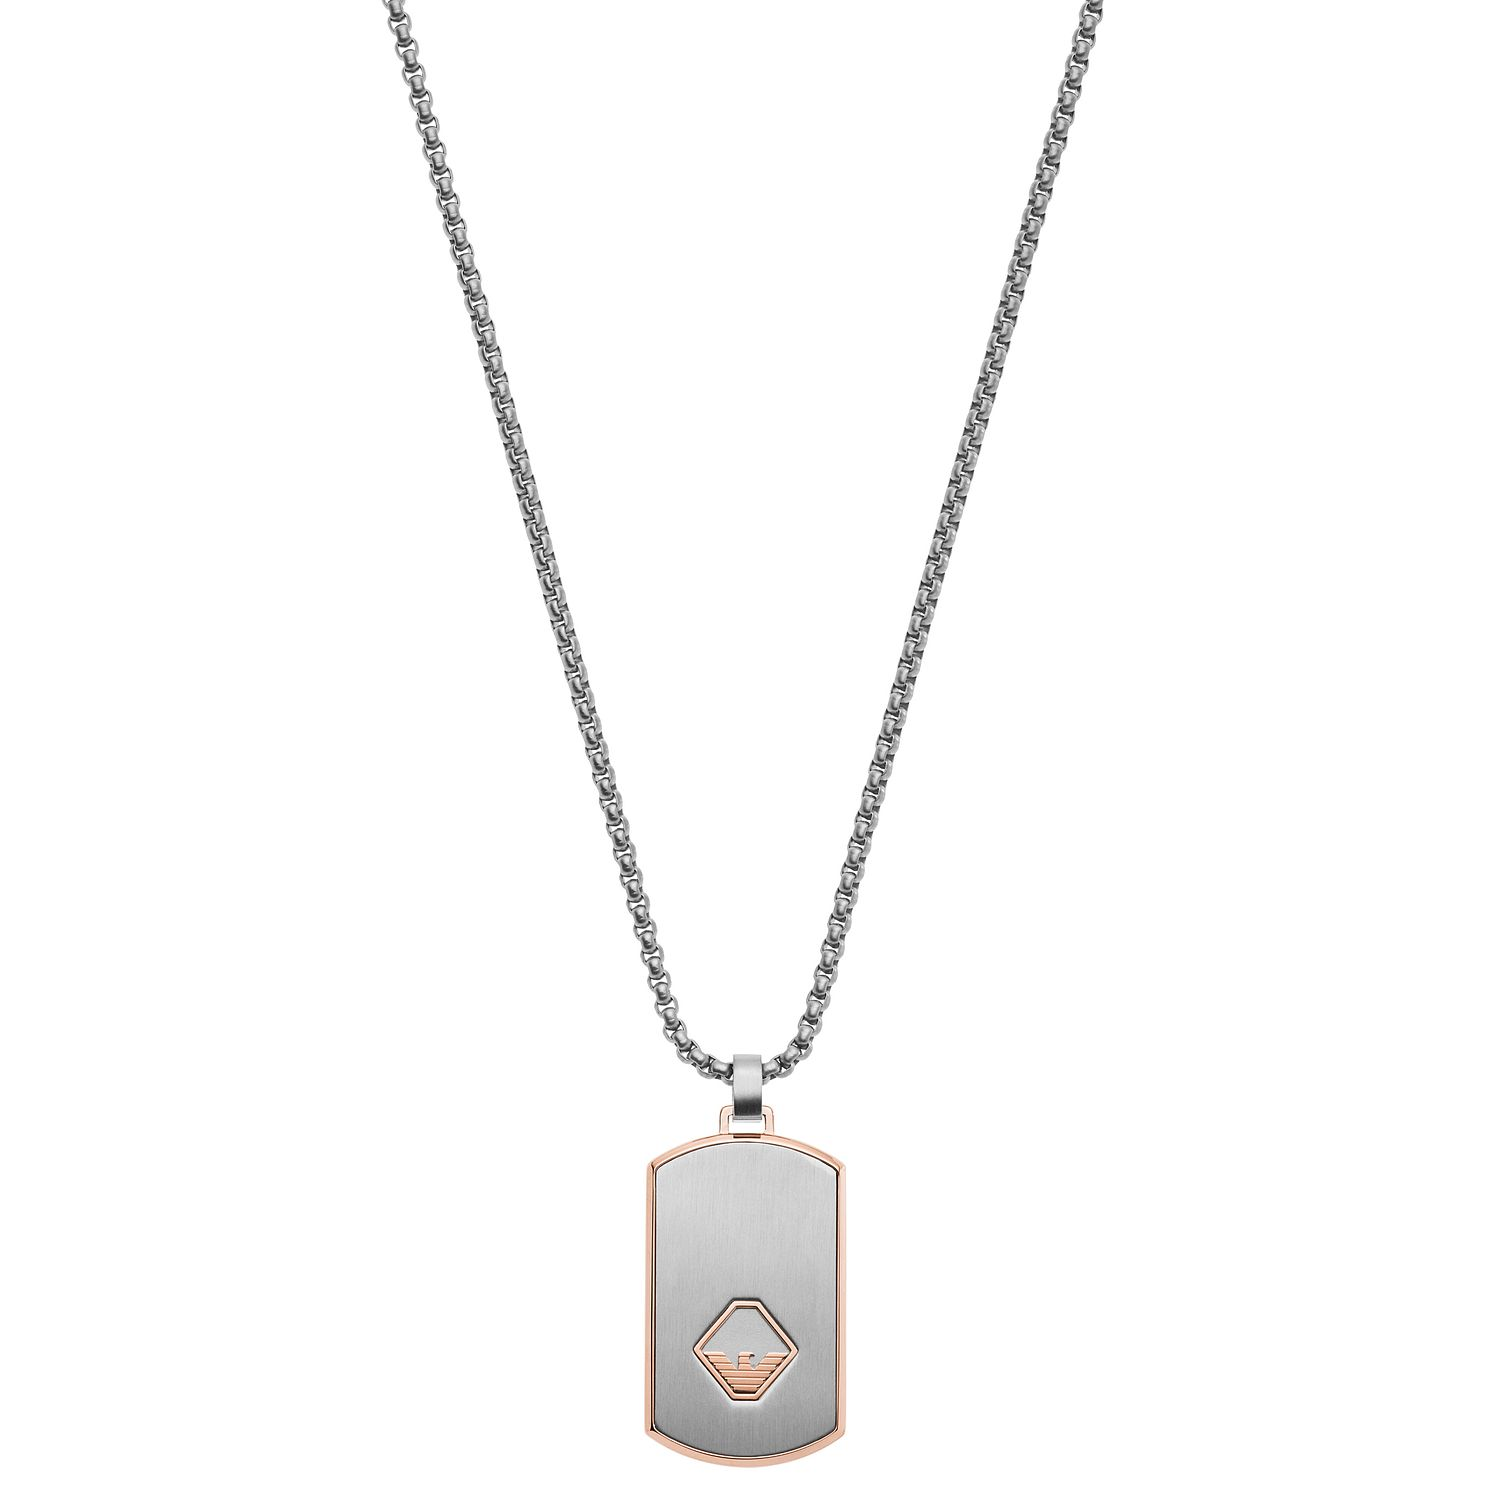 Emporio Armani Men's Stainless Steel Dogtag Necklace - Product number 2358336